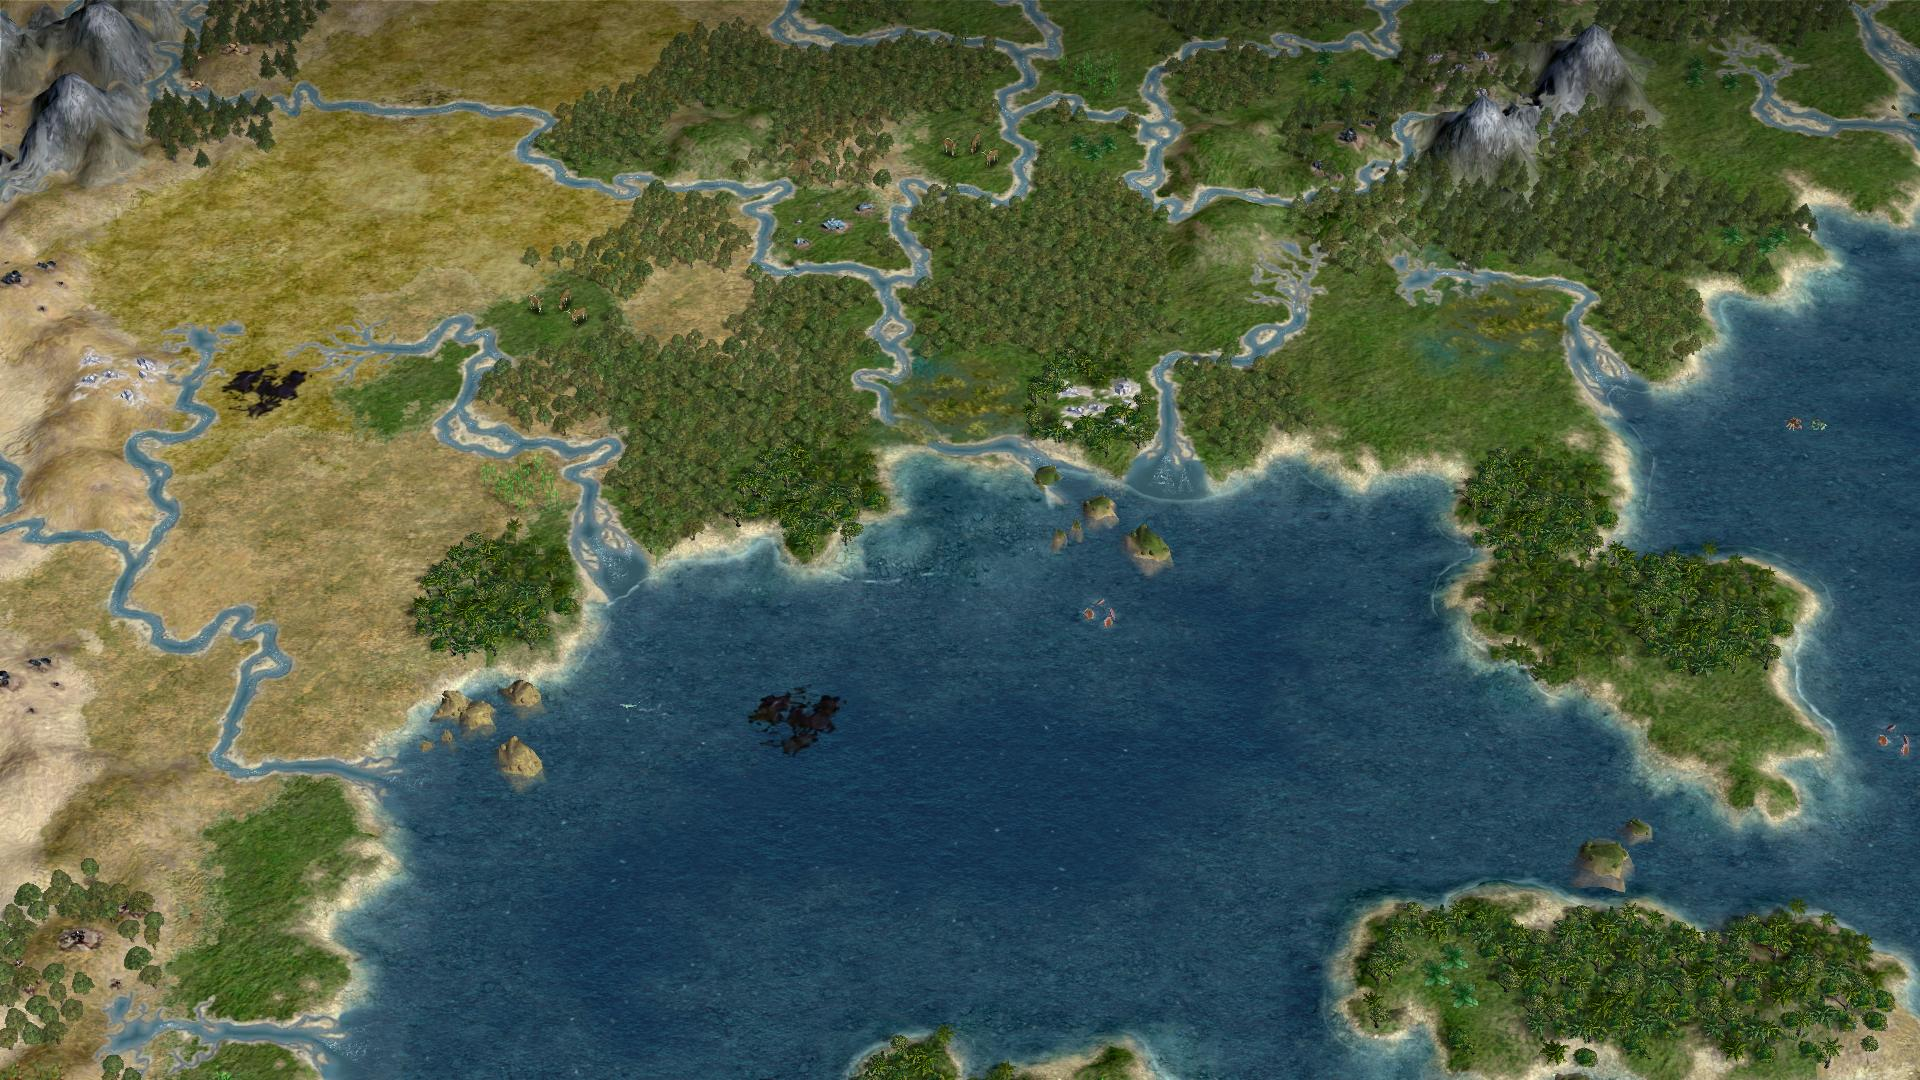 Civ4ScreenShot0025.JPG